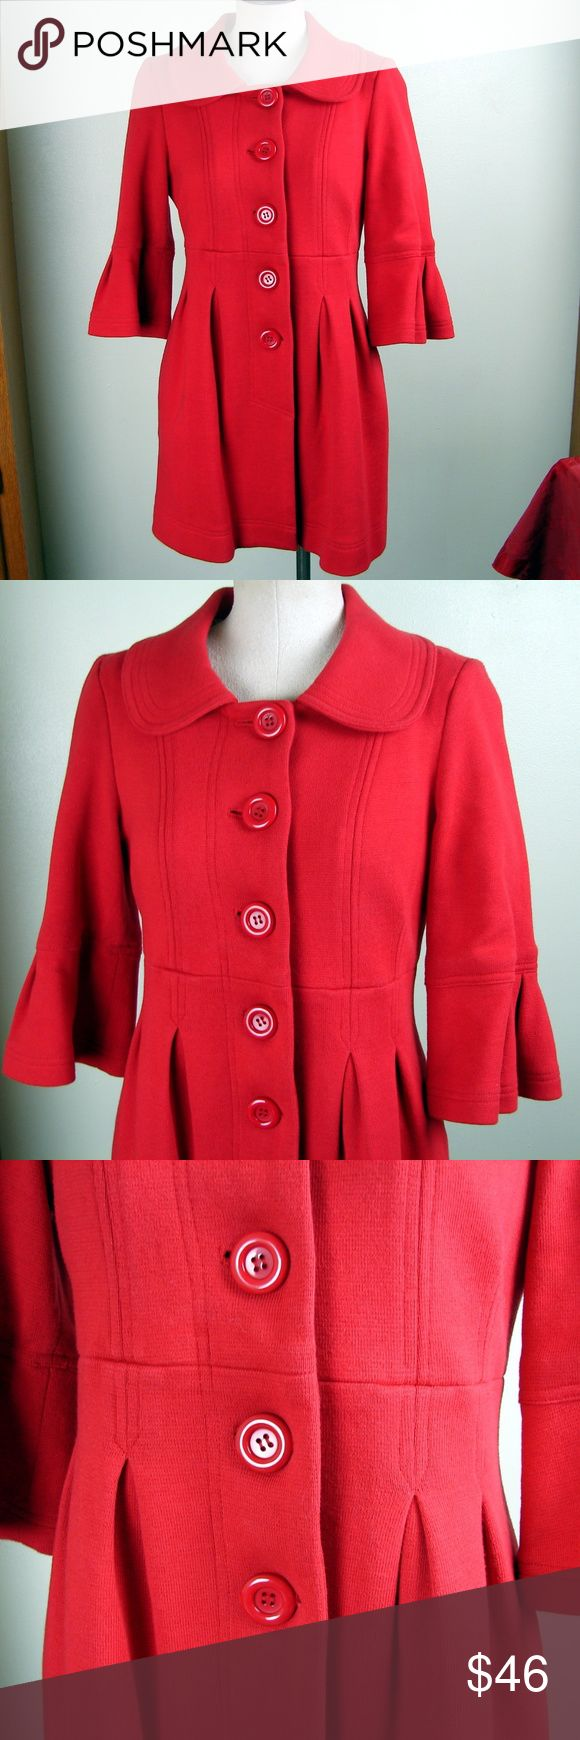 Forever 21 red pea coat bell sleeves M Forever 21 red pea coat bell sleeves M Excellent condition! Cut side pockets Peter Pan collar  269 Forever 21 Jackets & Coats Pea Coats